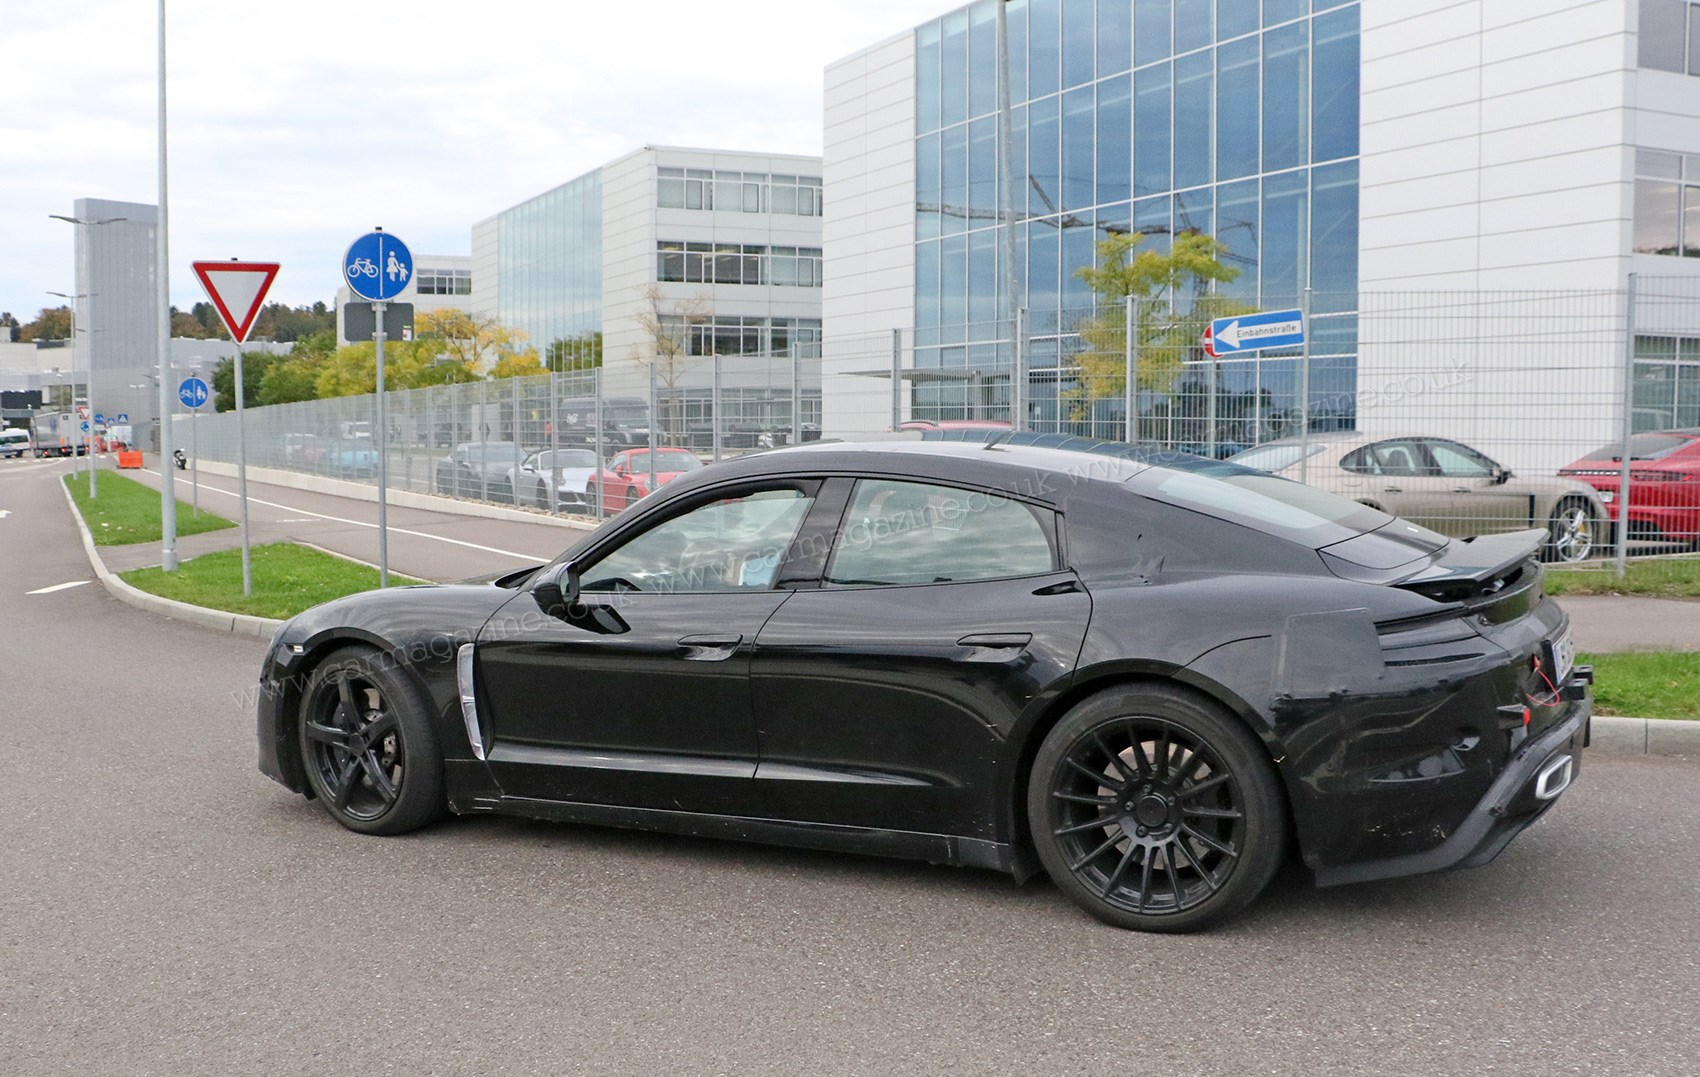 Exhaust Pipes For Show It S The New Porsche Mission E Electric Car